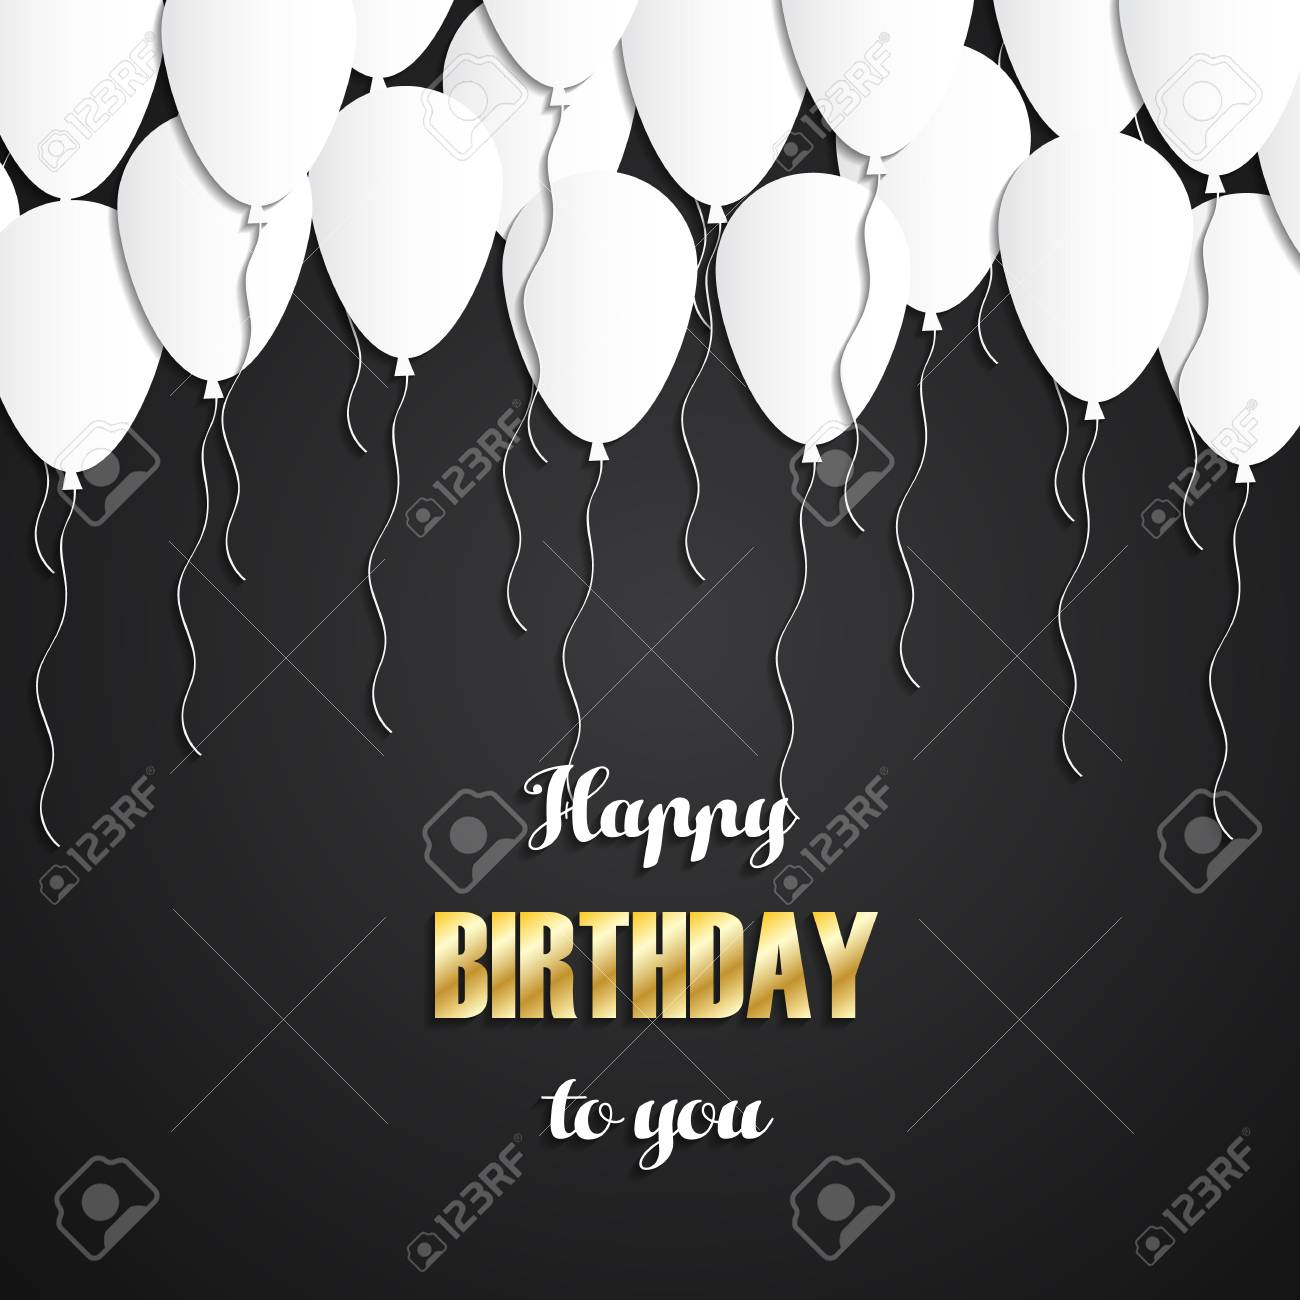 Happy Birthday Greeting Card With White Balloons And Gold Letters On Black Background Stock Vector